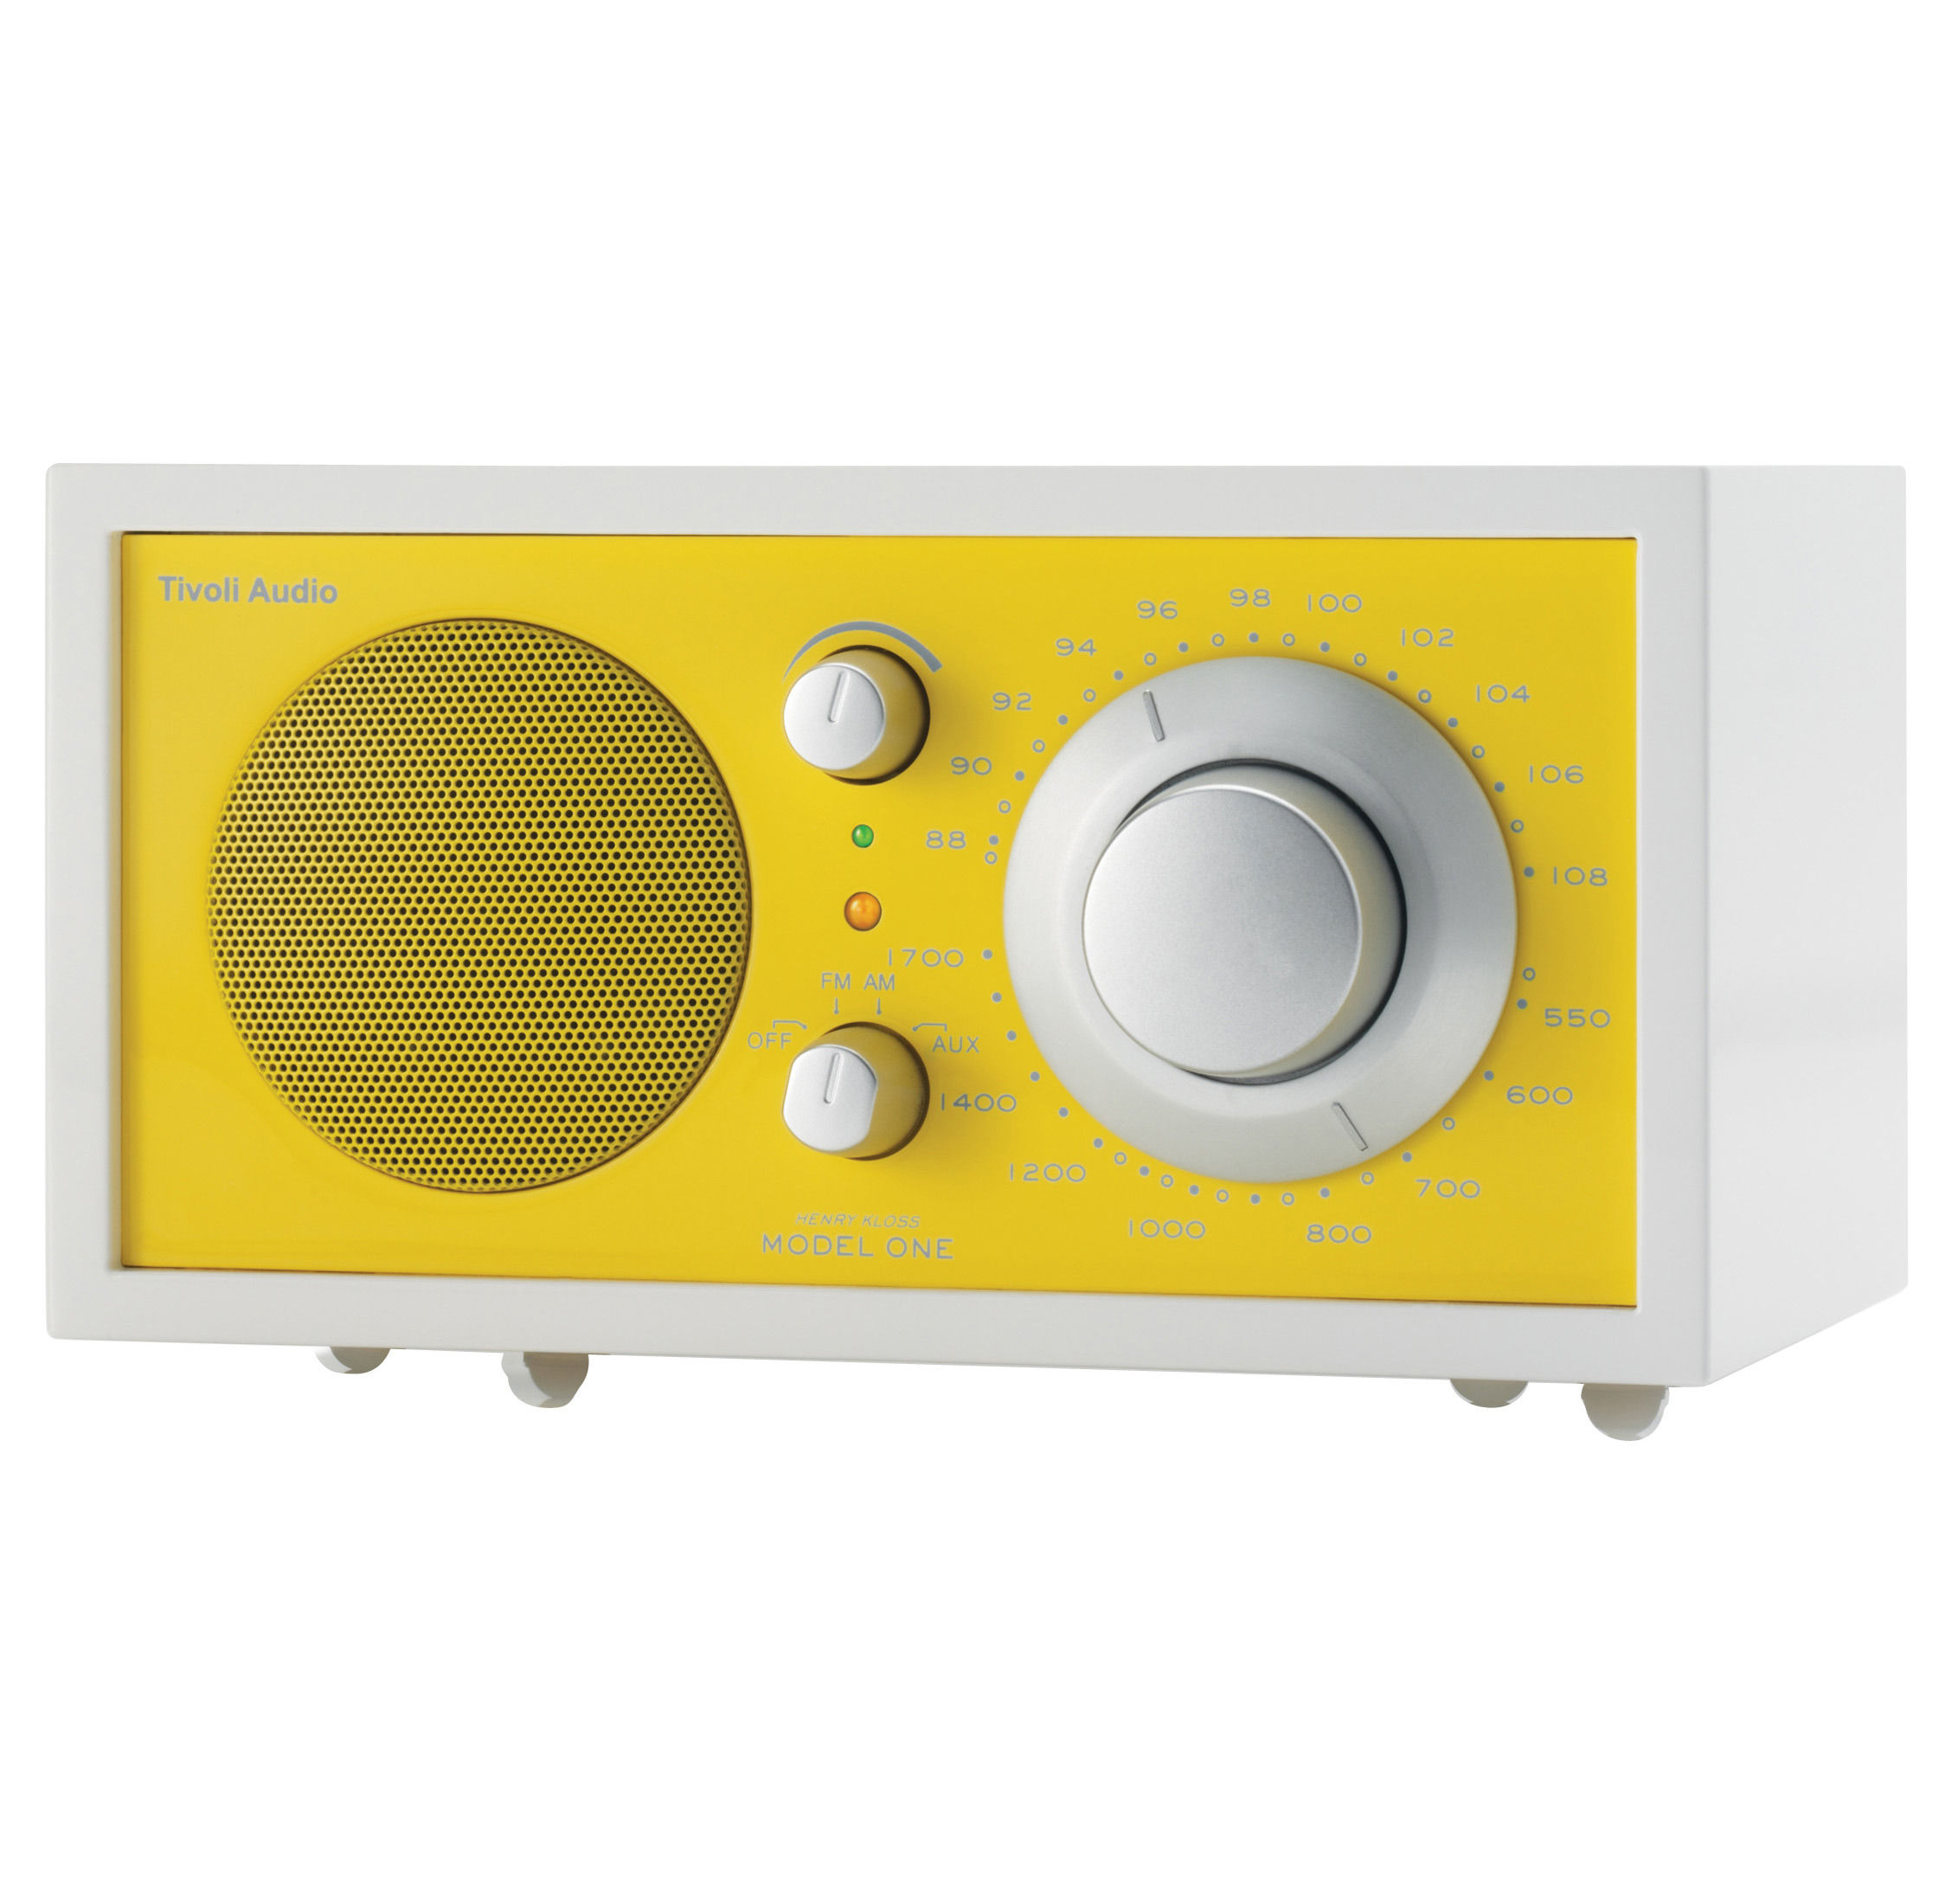 radio model one s rie frost white enceinte portative compatible ipod jaune tivoli audio. Black Bedroom Furniture Sets. Home Design Ideas